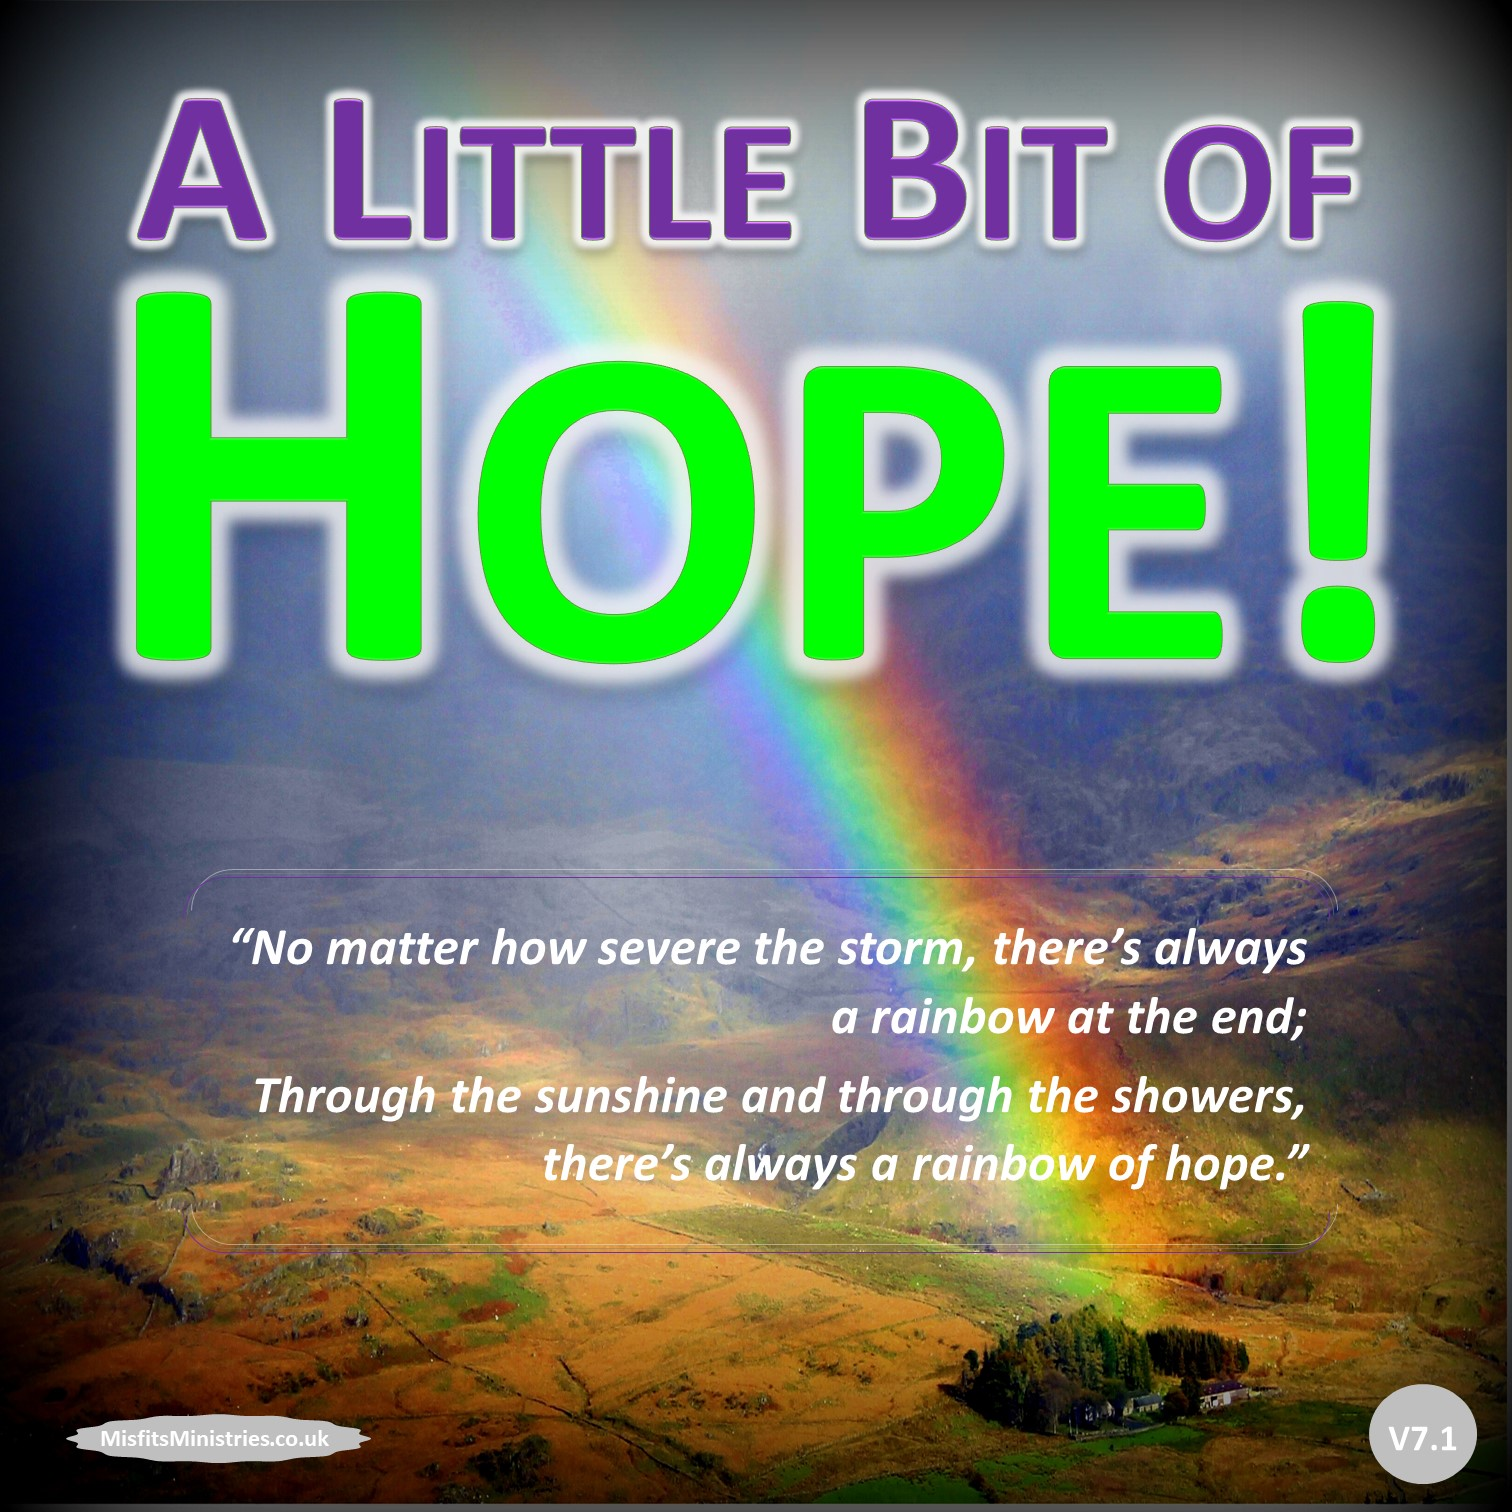 A Little Bit of Hope! - pdf version